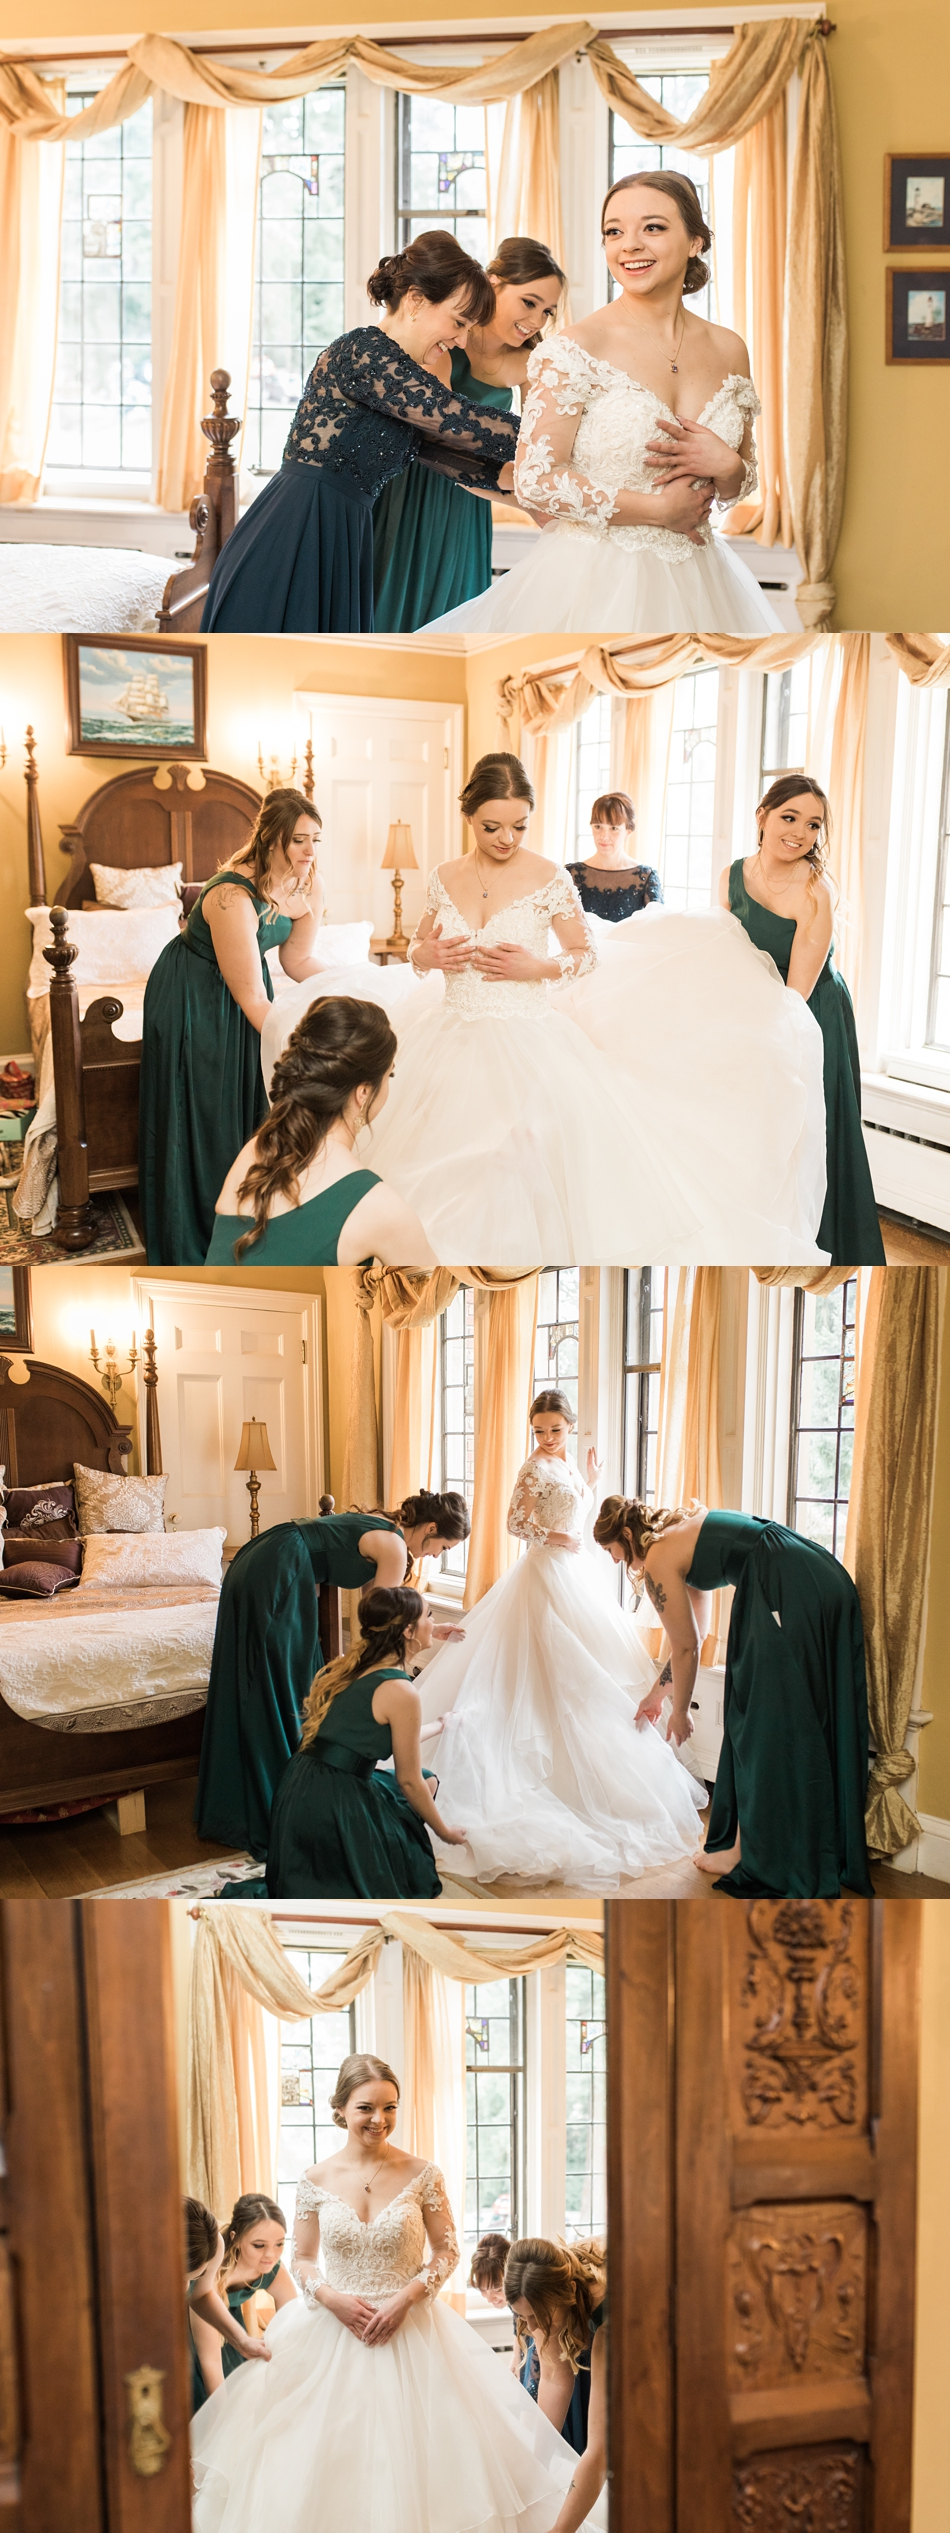 Bridesmaids help a bride get ready before her regal winter wedding at Thornewood Castle in Lakewood, a wedding venue near Seattle, WA. | Joanna Monger Photography | Seattle & Snohomish Wedding Photographer